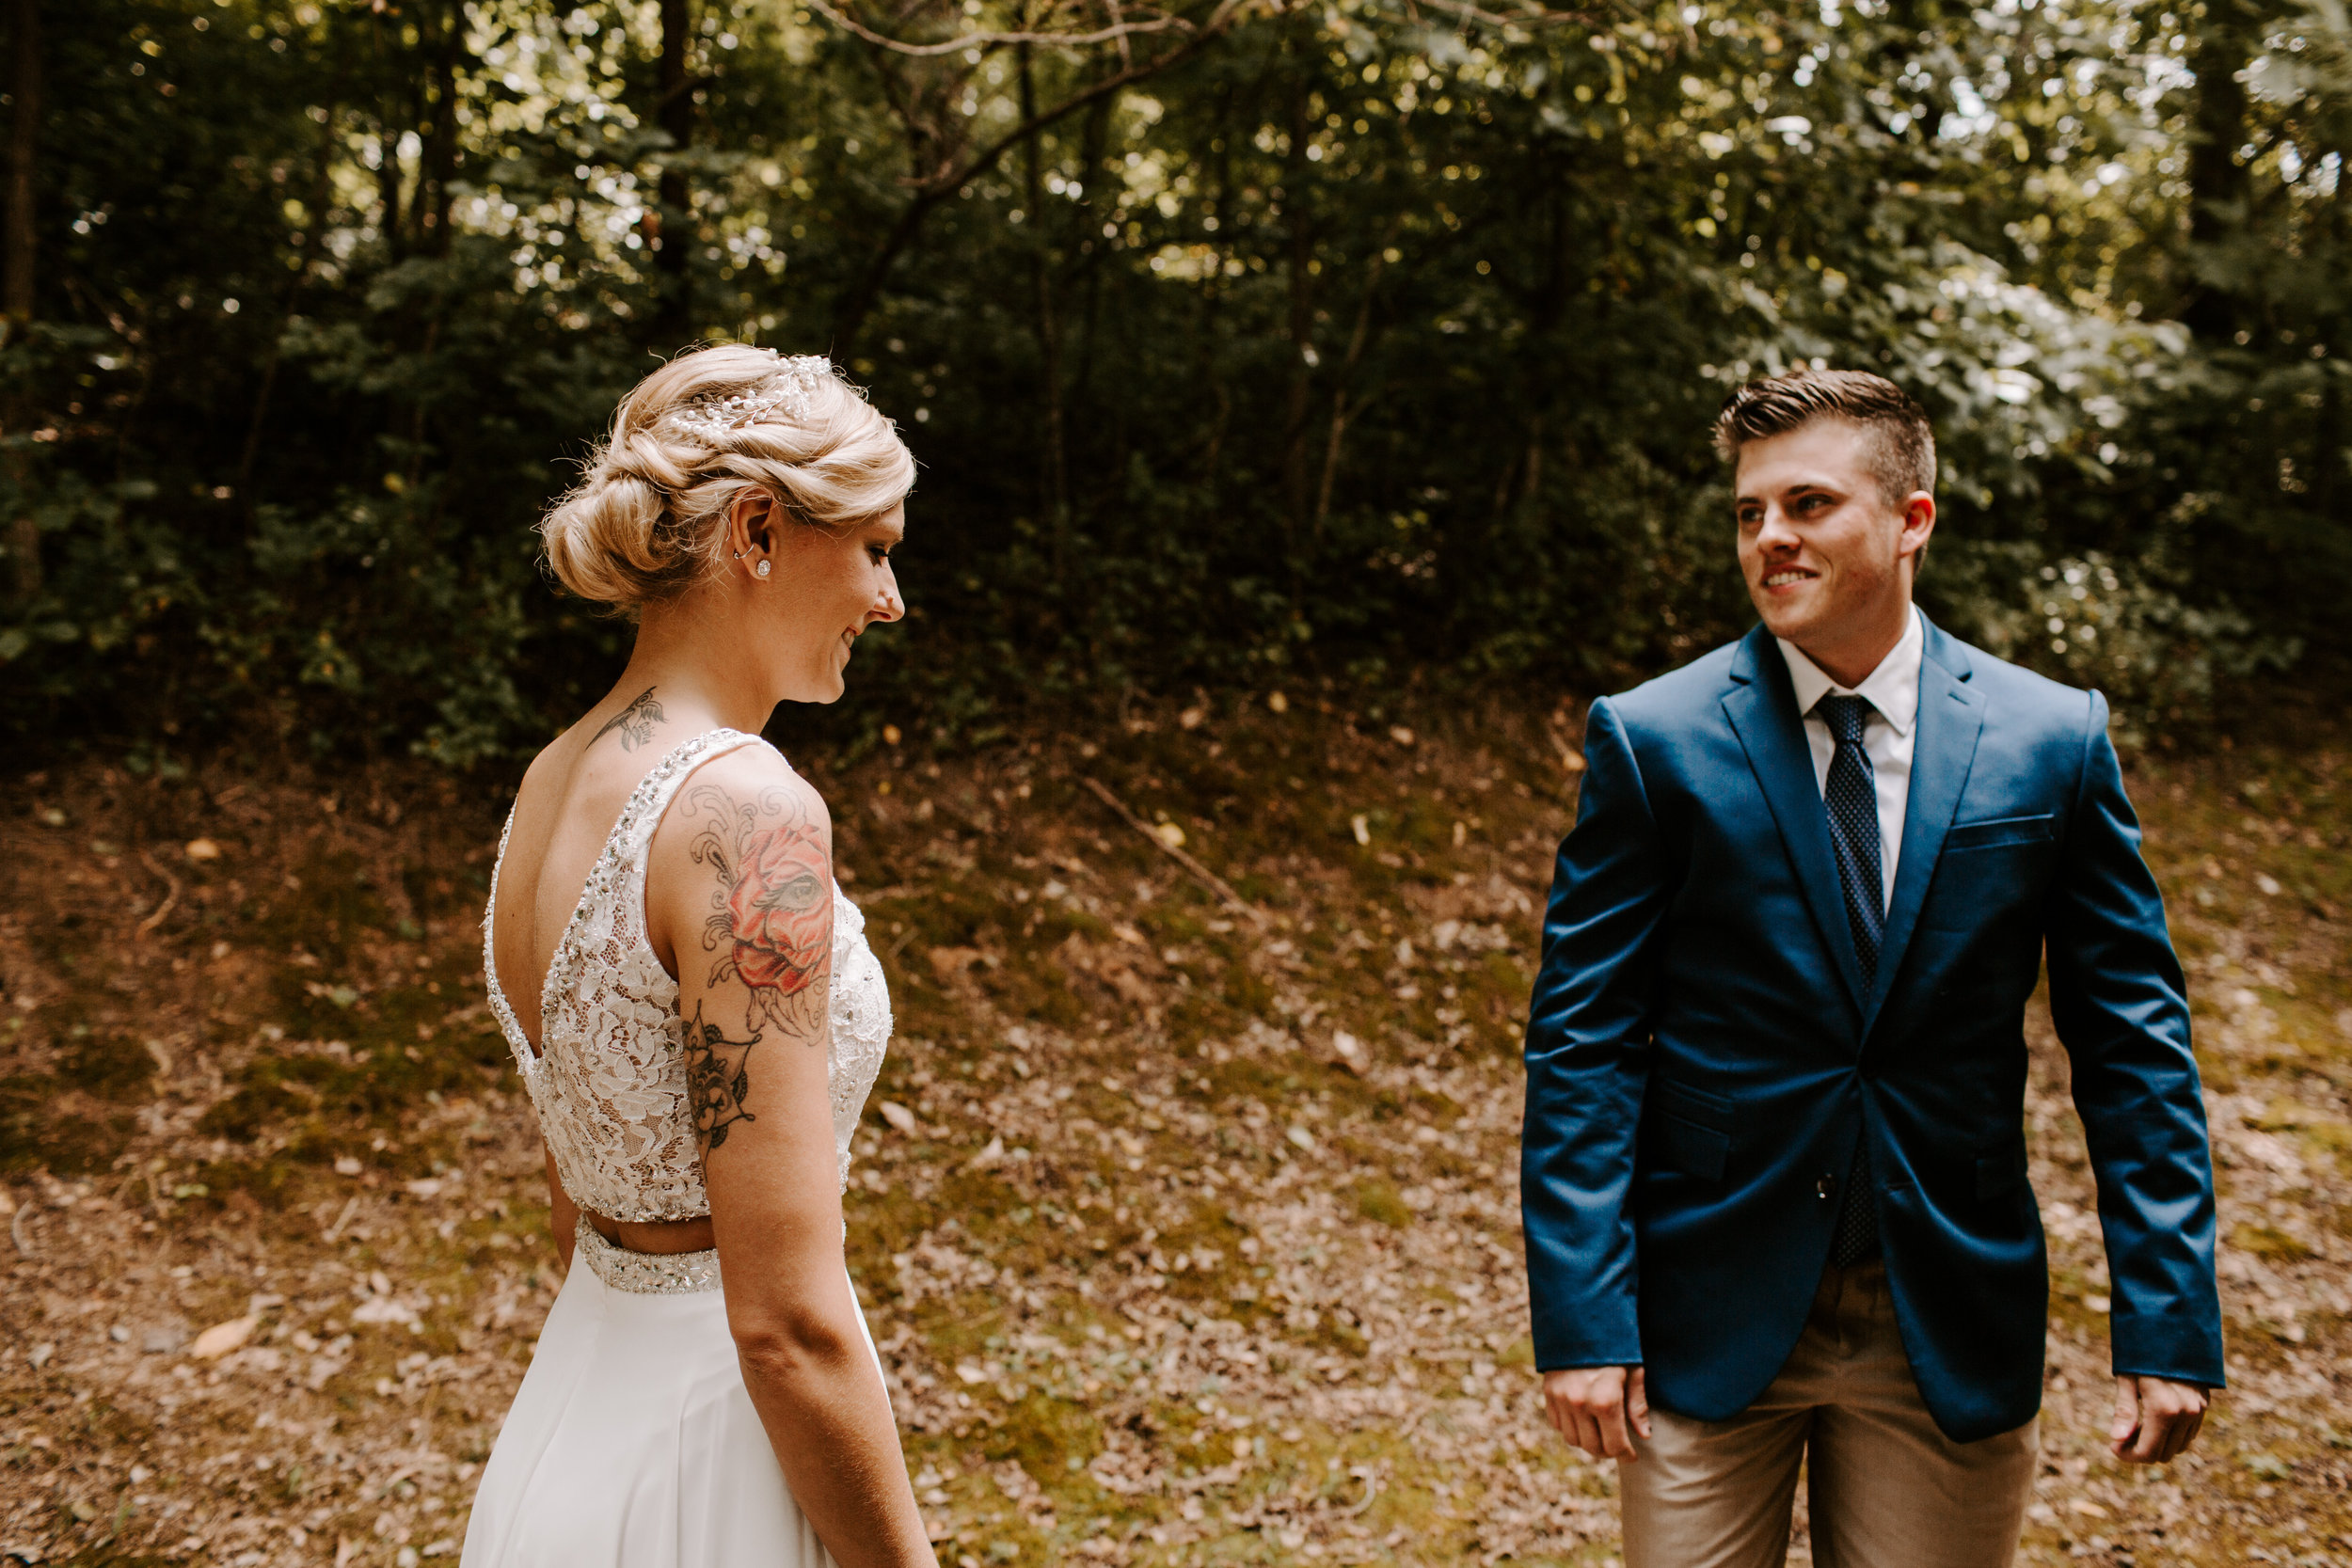 Miranda&braedon_ashevilleelopement (69 of 101).jpg